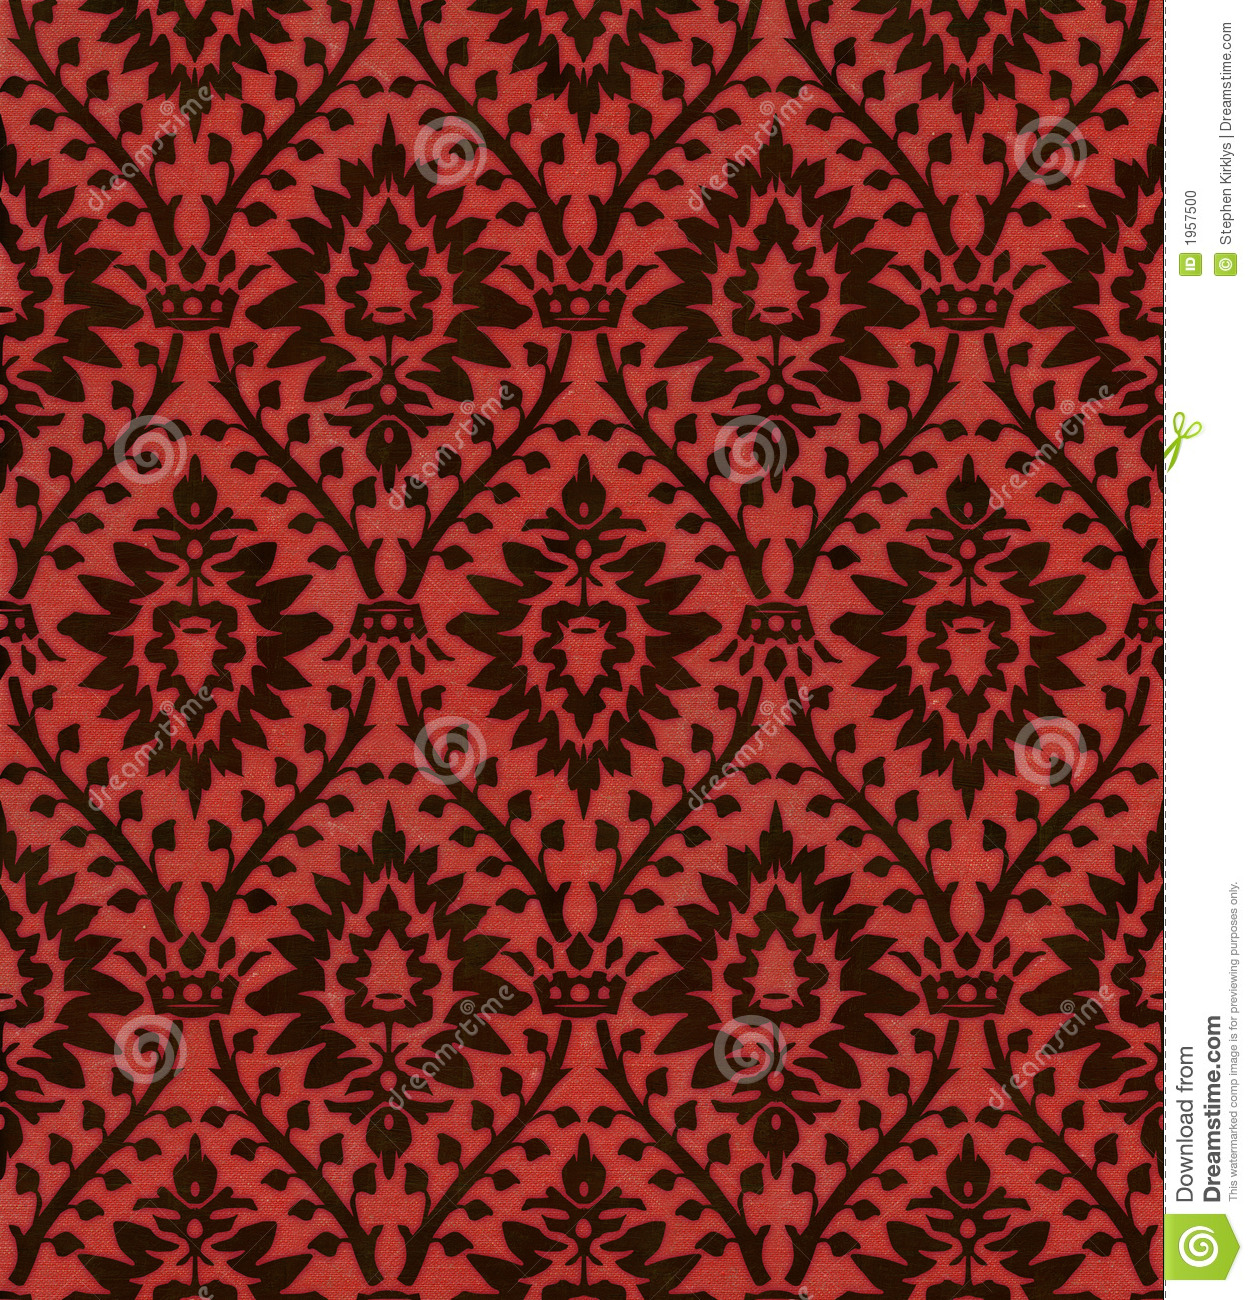 Victorian Wallpaper 101 Stock Photo Image 1957500